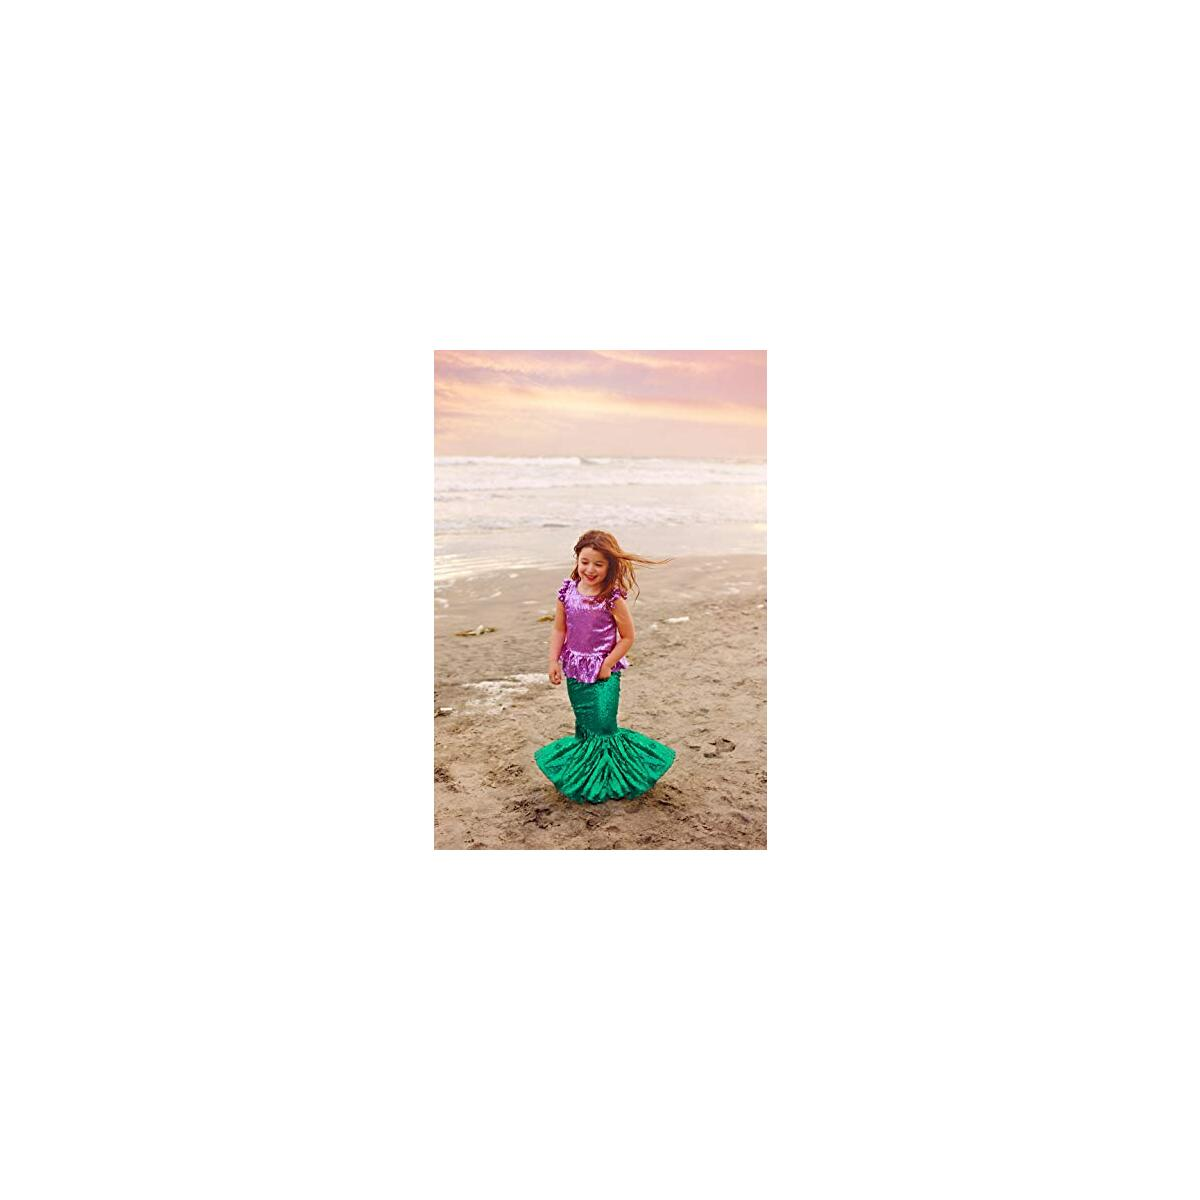 Toddler Girl's Mermaid Costume for Birthday Party, Dress up Play and Halloween - Purple Top W/ Deep Green Skirt M (3-4 Years)